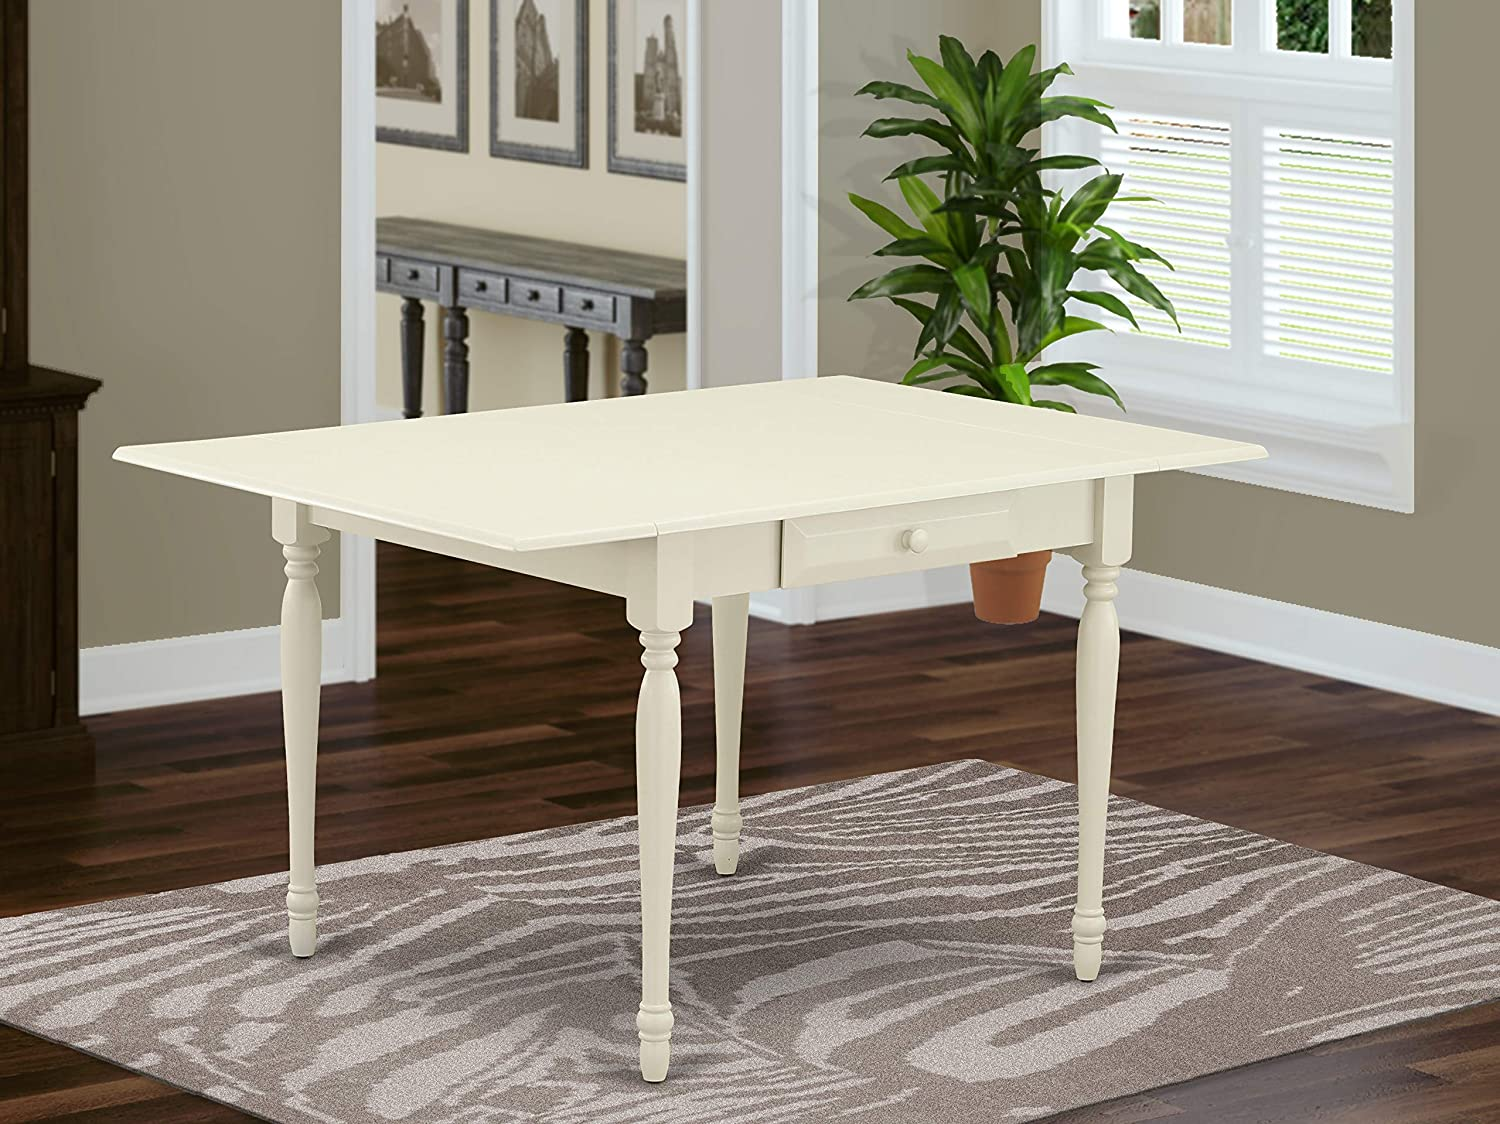 "East West Furniture Monza Rectangular Table 36""X54"" With 2 Drop Leaves Leaf In Linen White Finish, Medium"